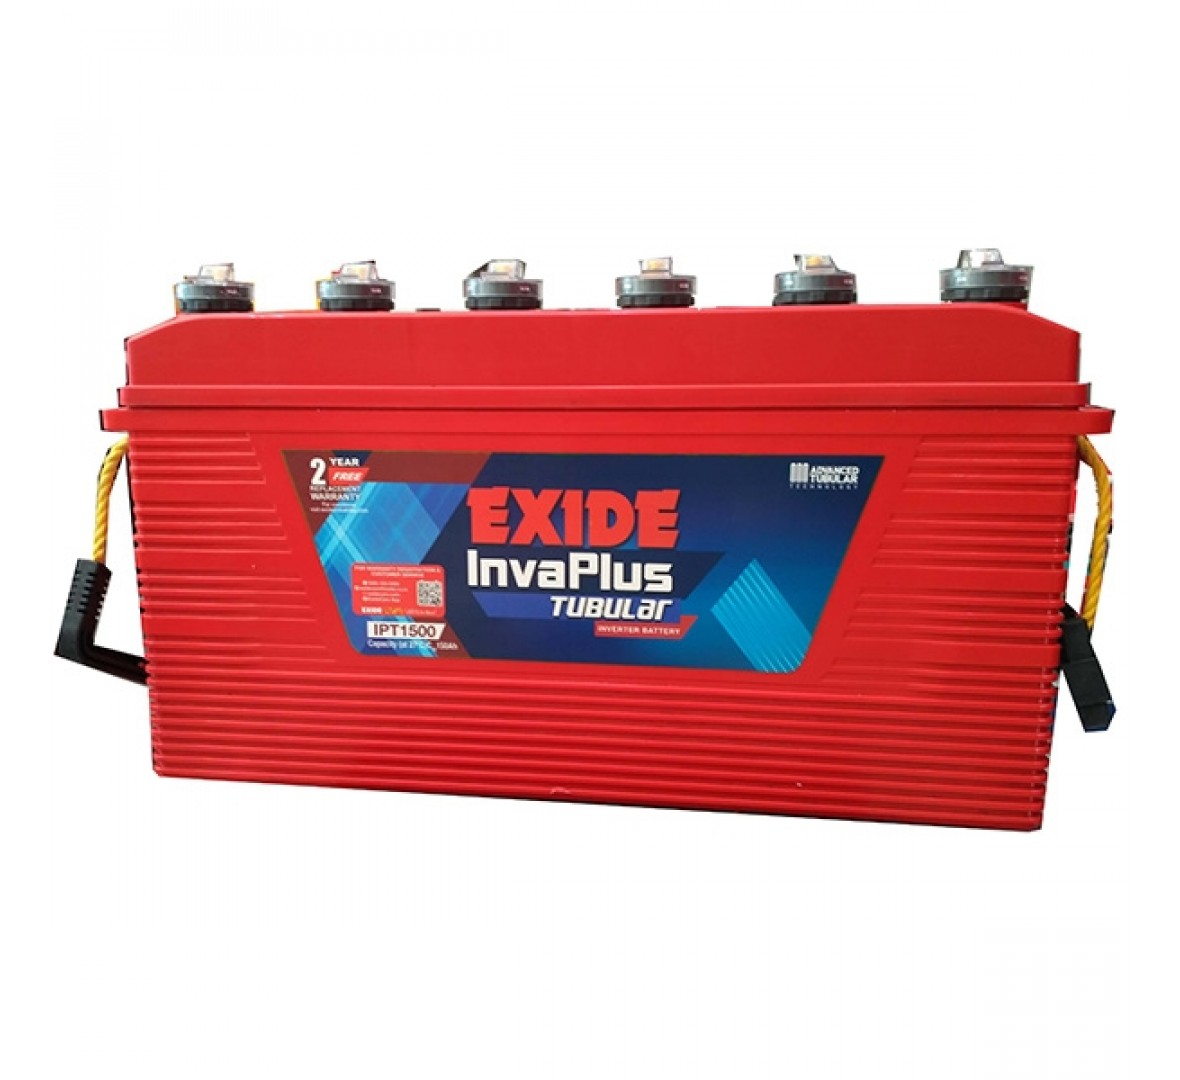 Exide Invaplus IPST1000 100Ah Tubular Battery